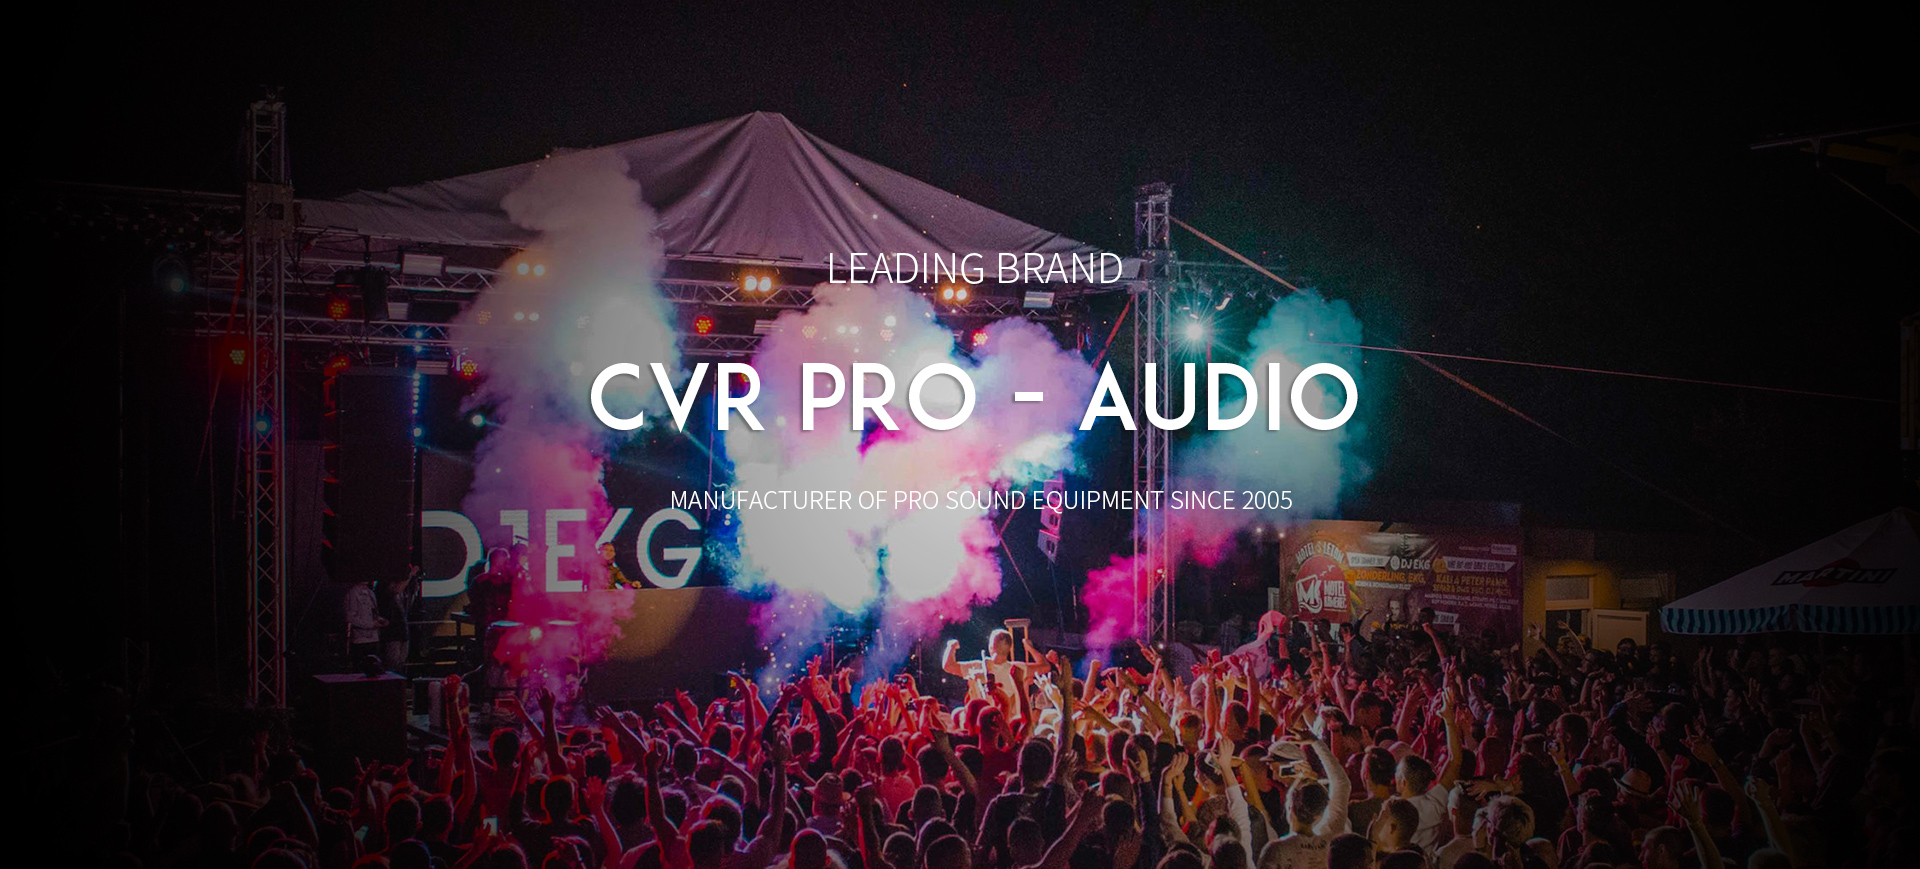 Guangzhou CVR Pro-Audio Co., Ltd